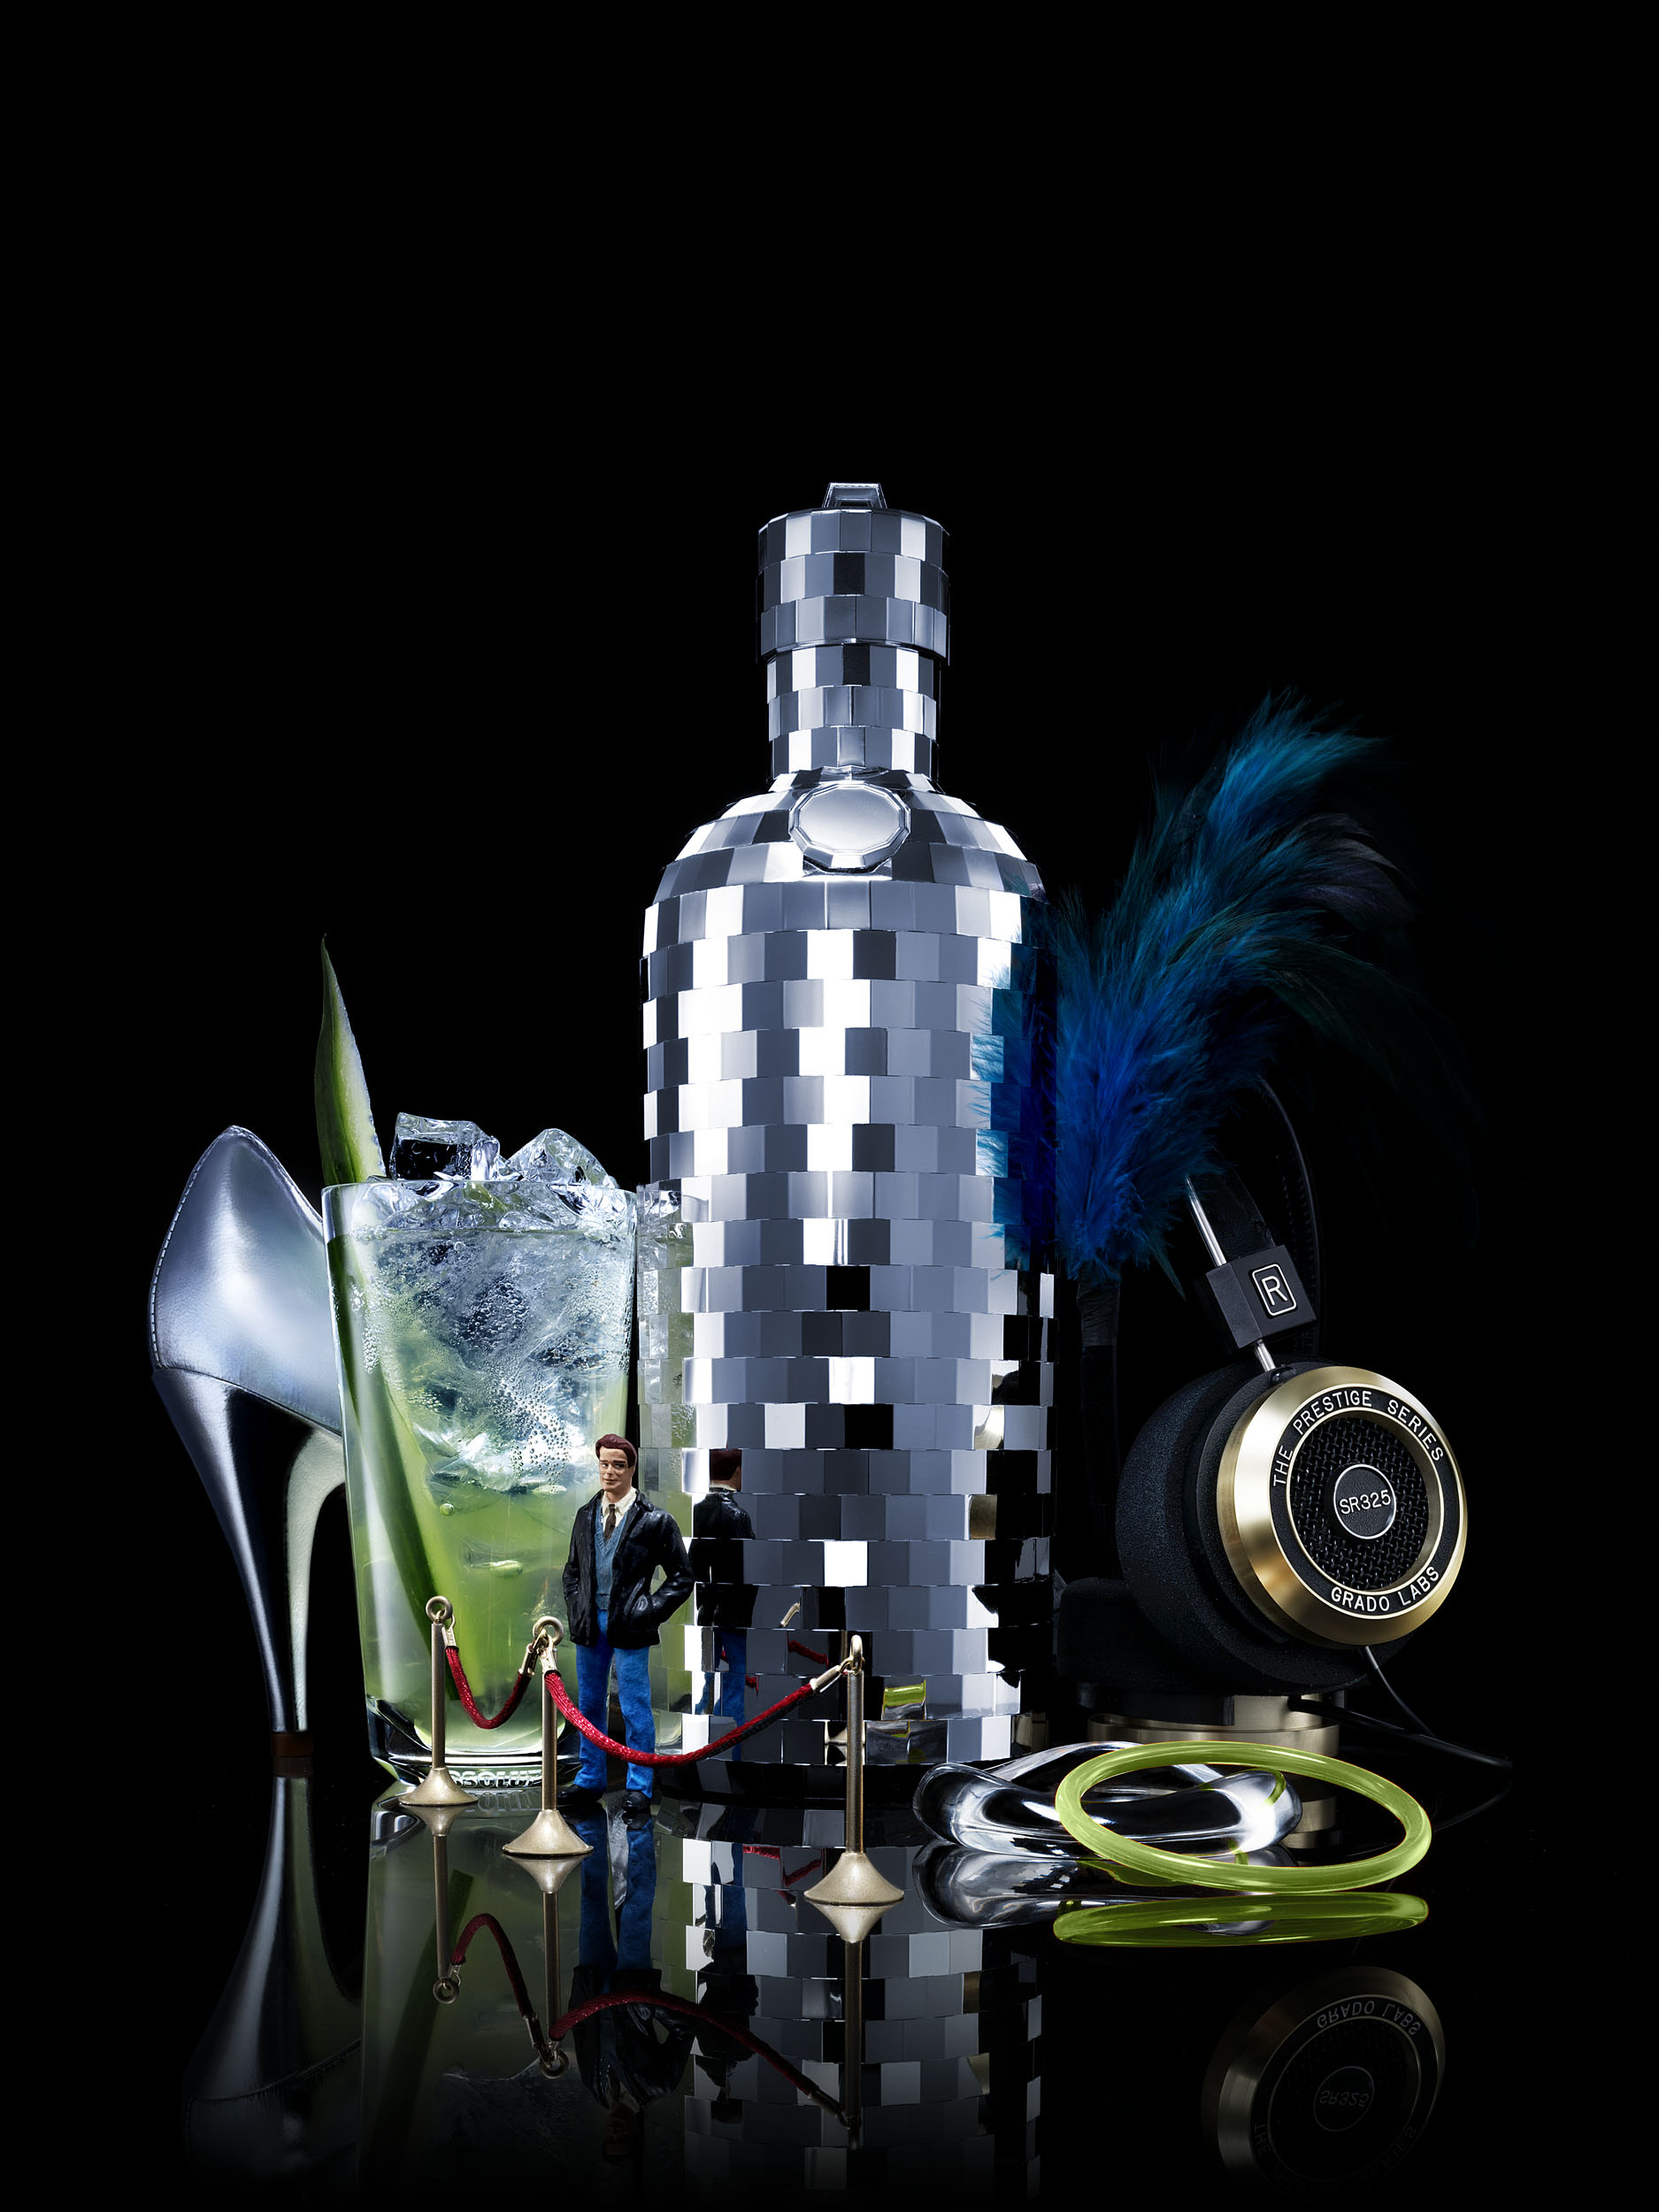 jensmortensen-absolut-vodka-1574a8fc